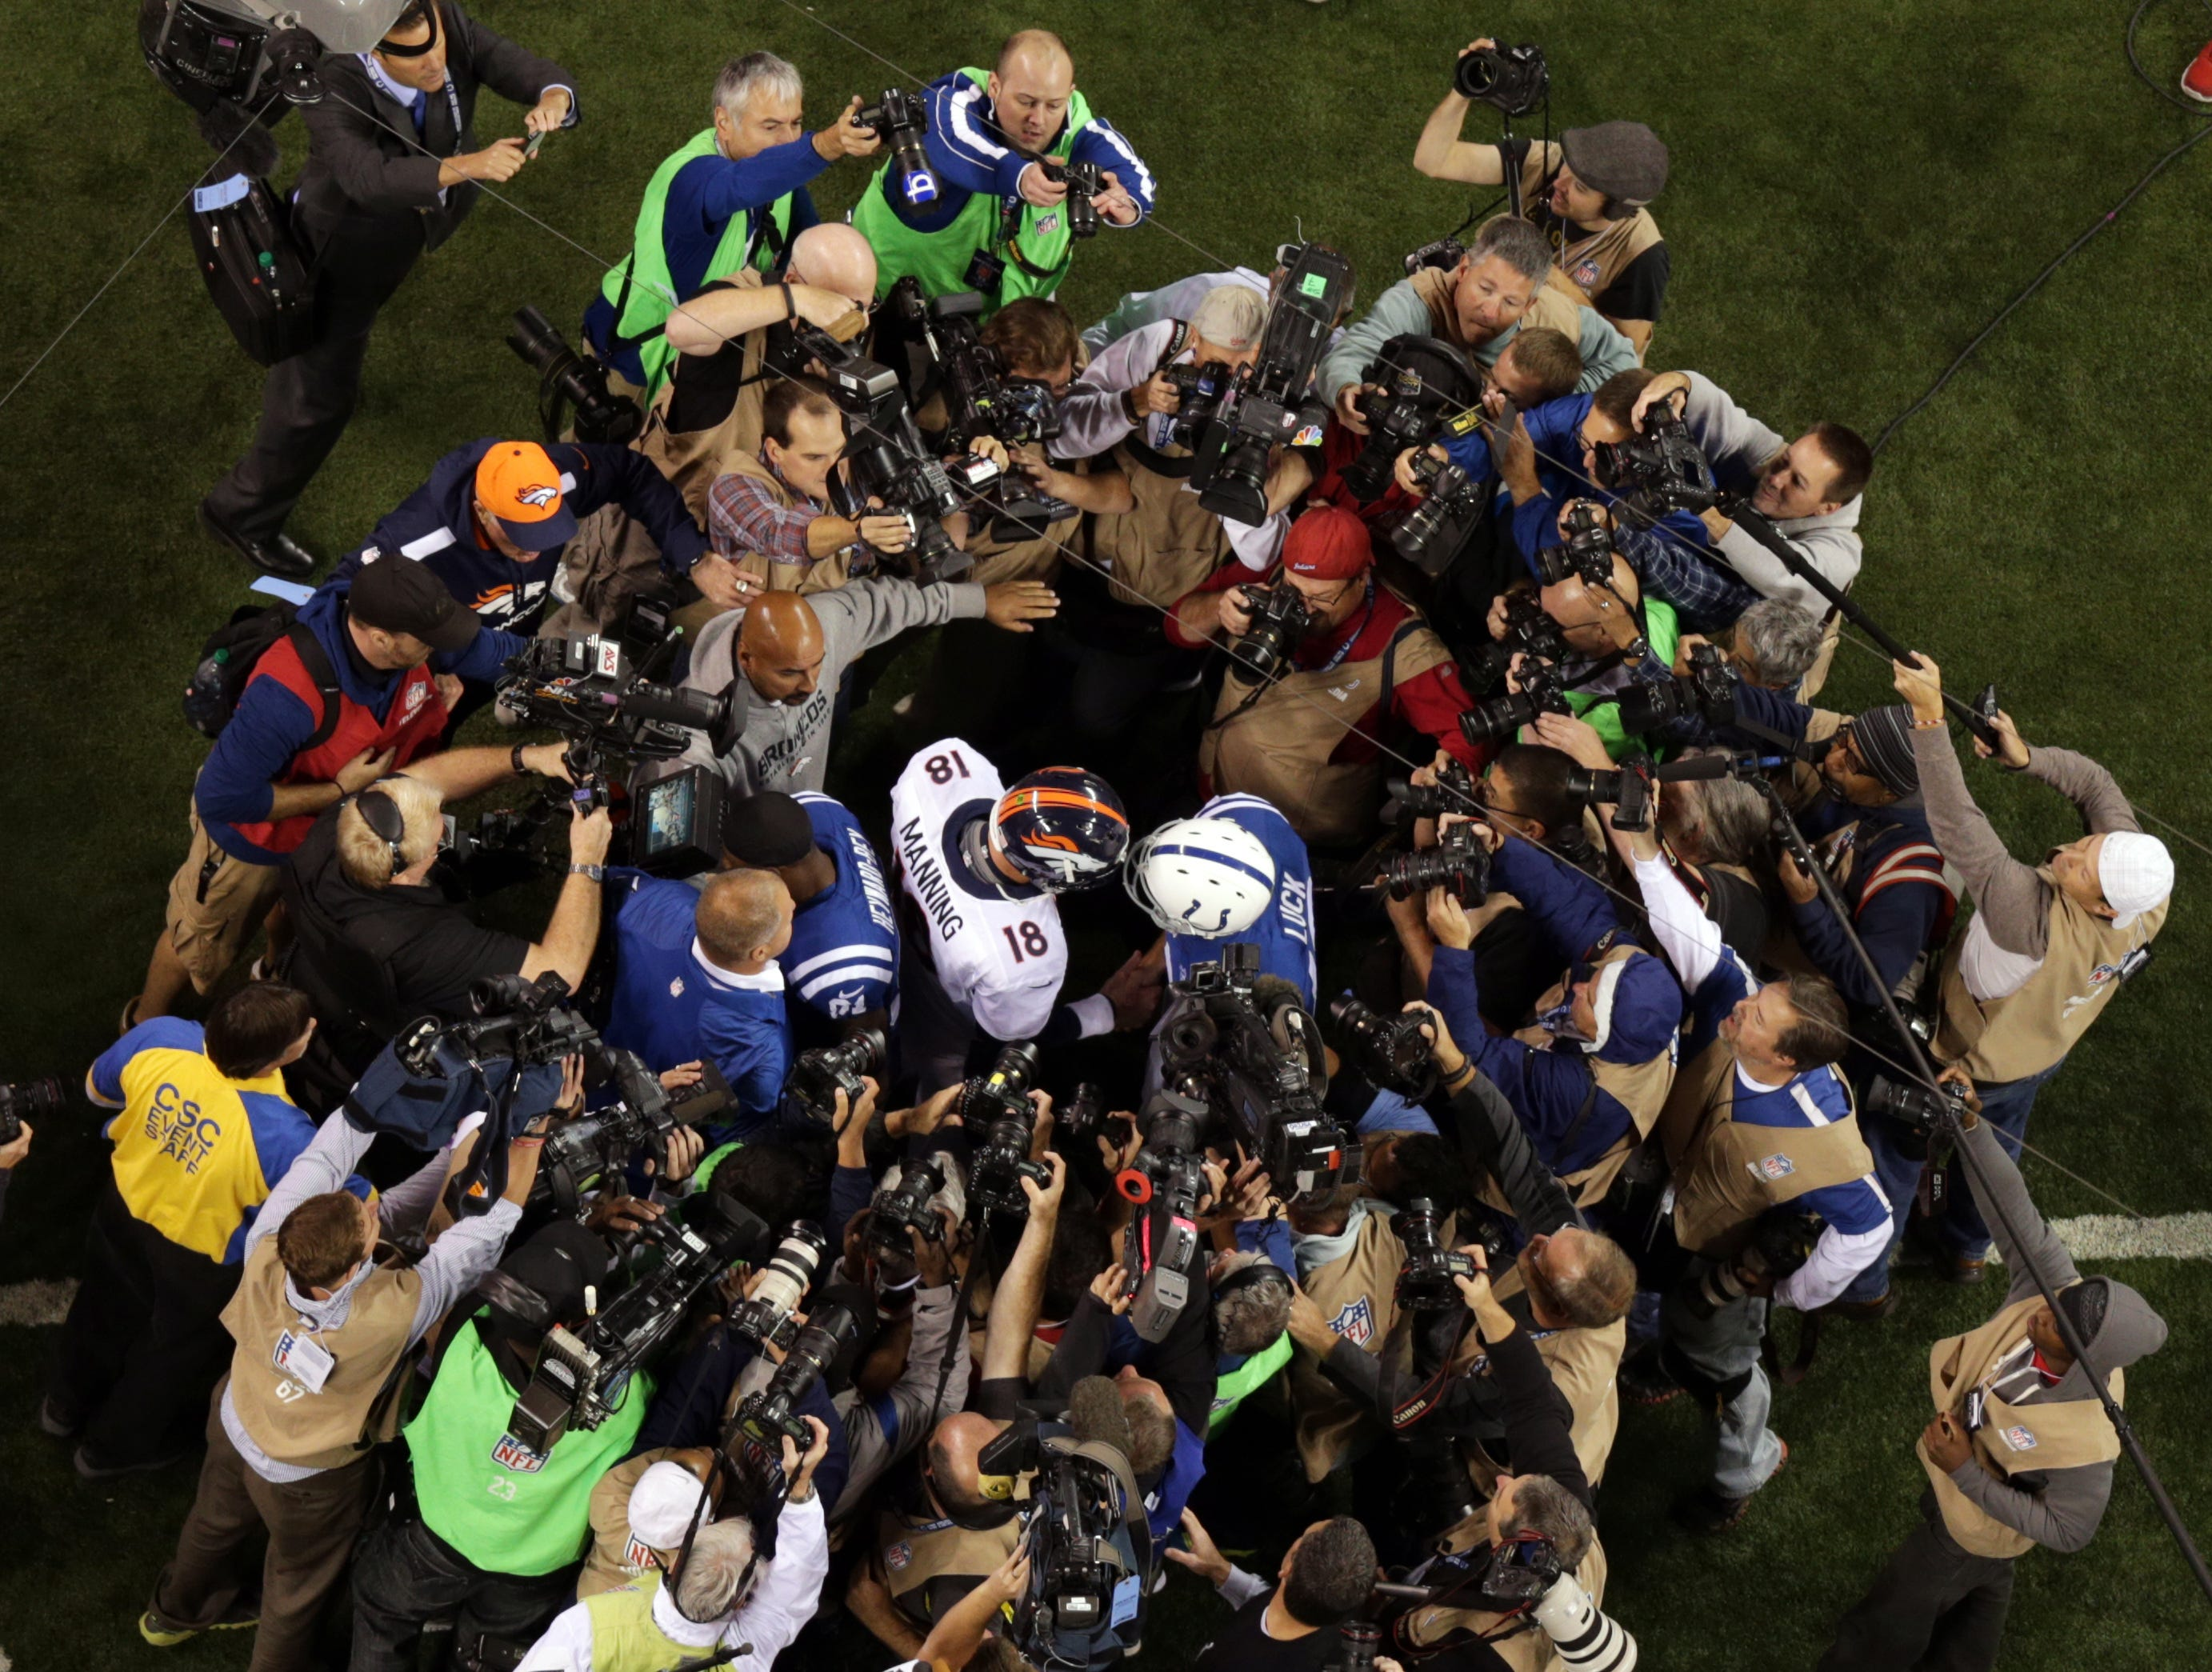 Andrew Luck and Peyton Manning are surrounded by photographers as they met following their game October 20, 2013 at Lucas Oil Stadium.  Indianapolis won 39-33.